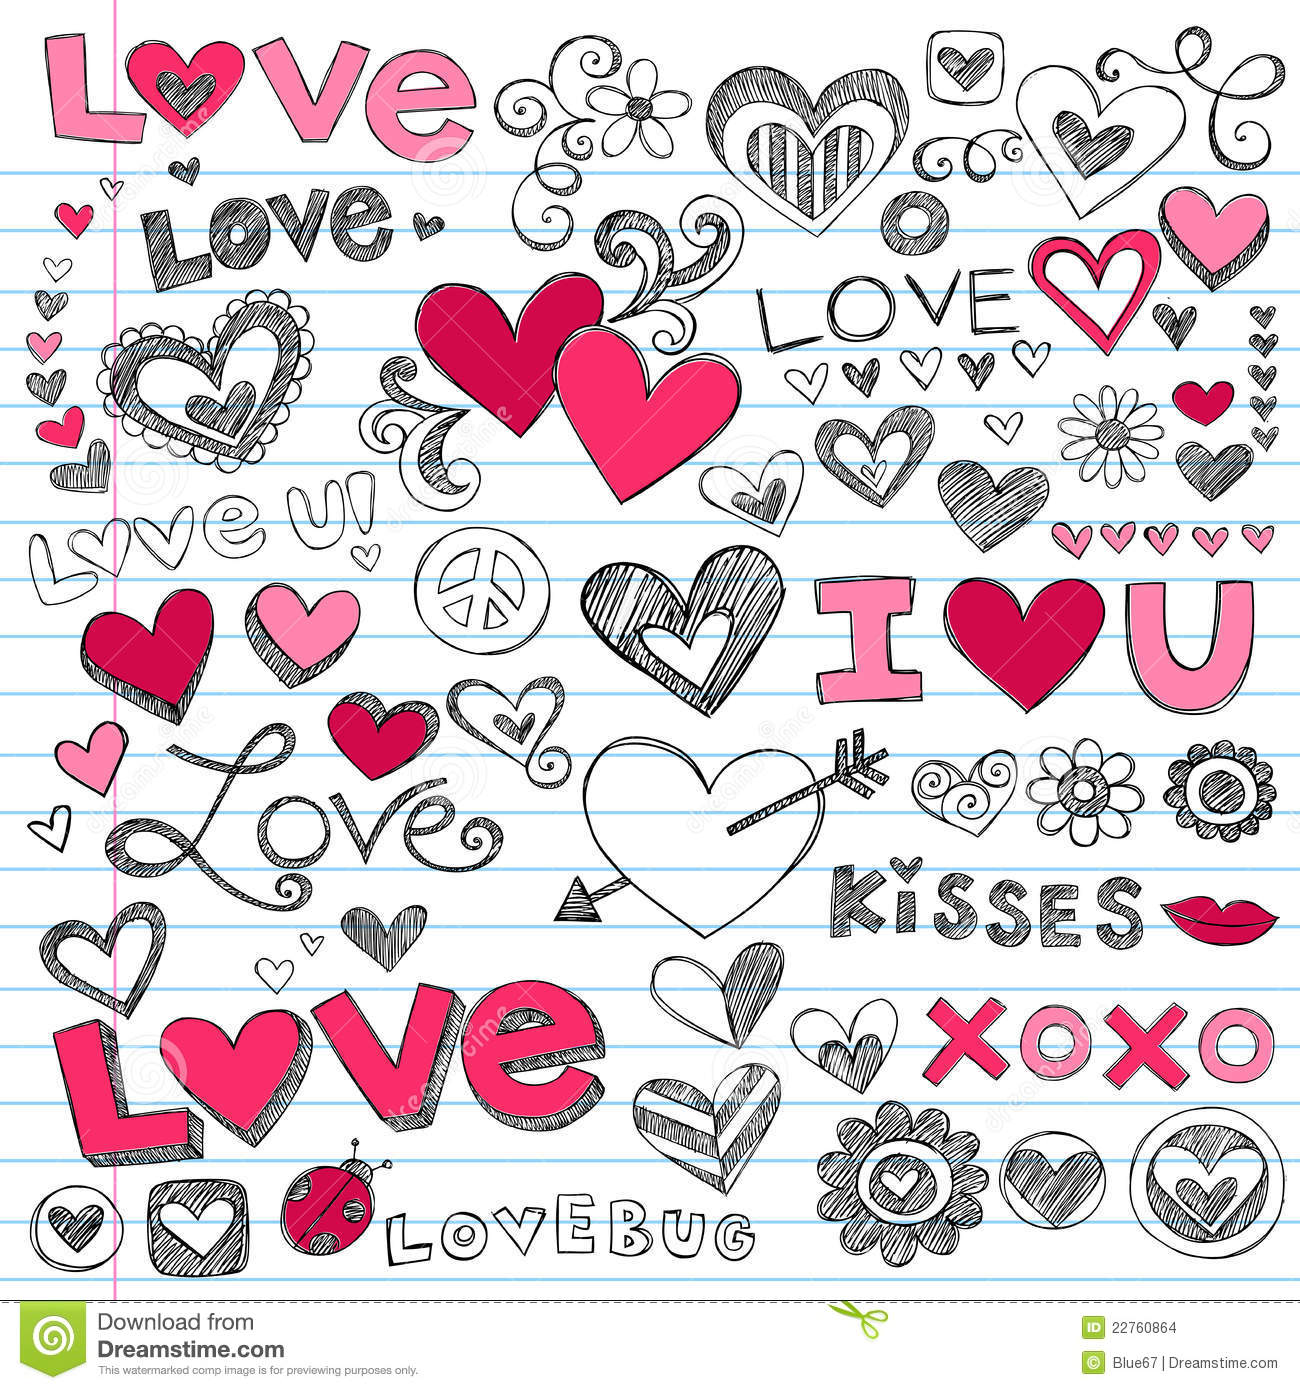 Love Hearts Valentine s Day Doodles